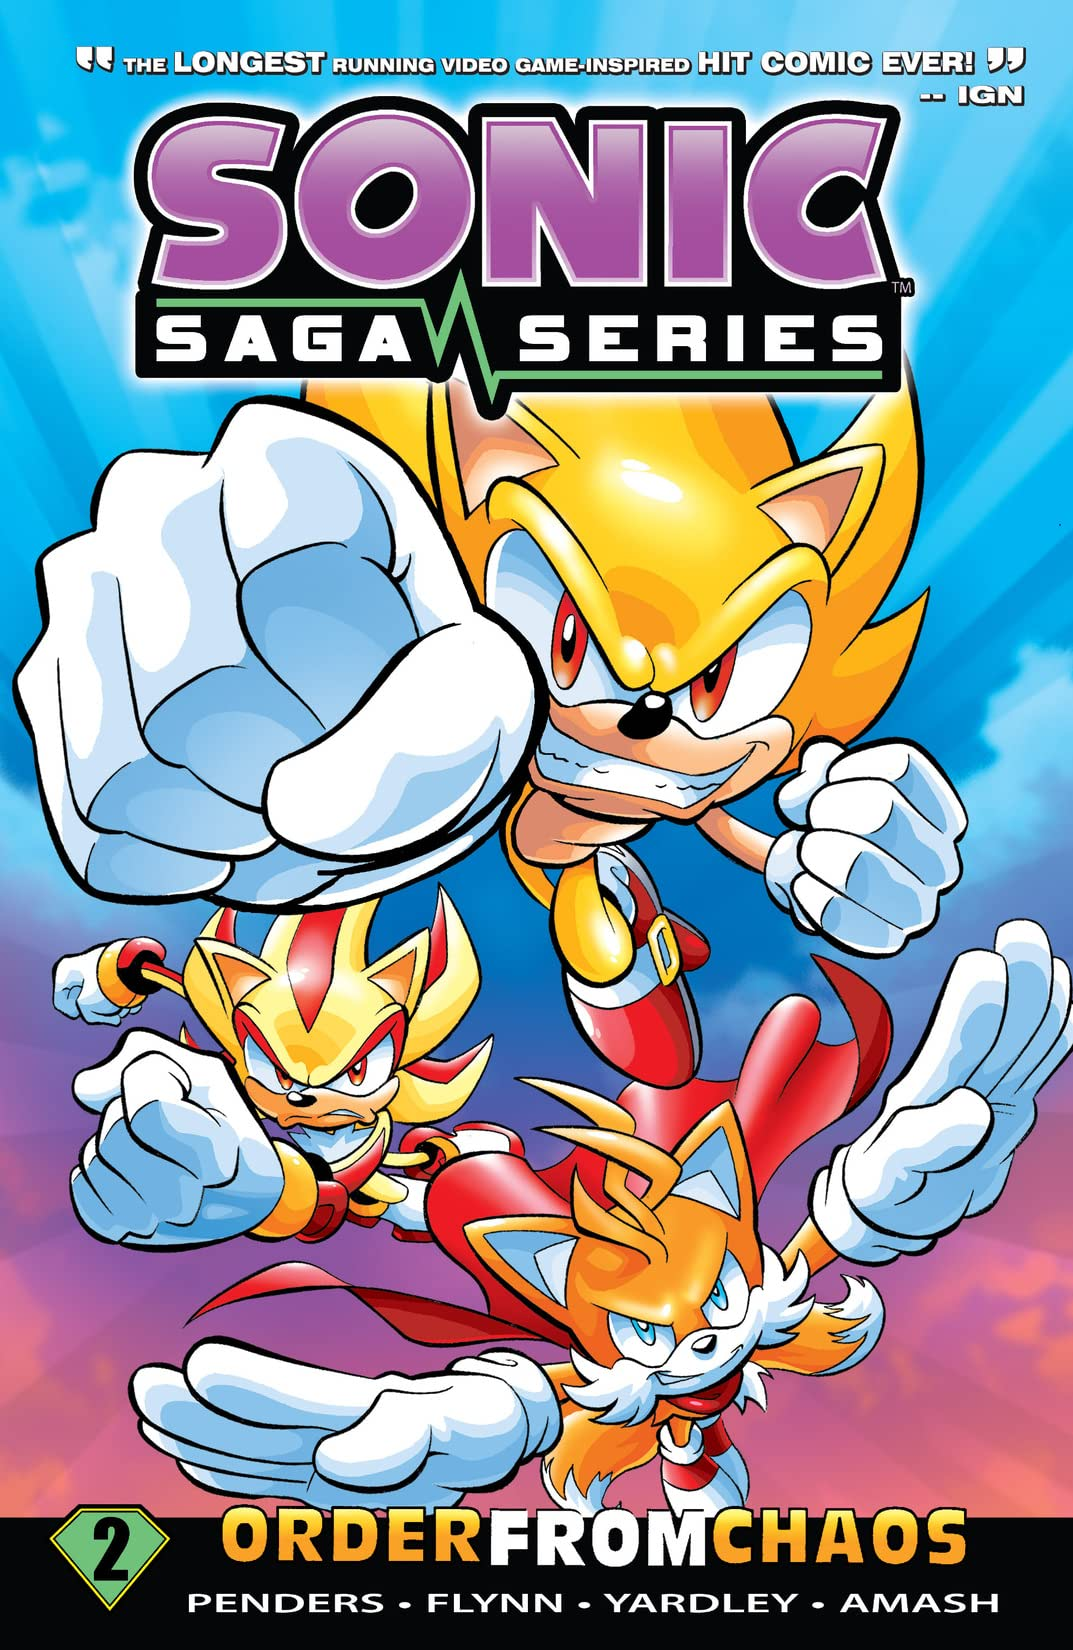 Sonic Saga Series Vol. 2: Order From Chaos